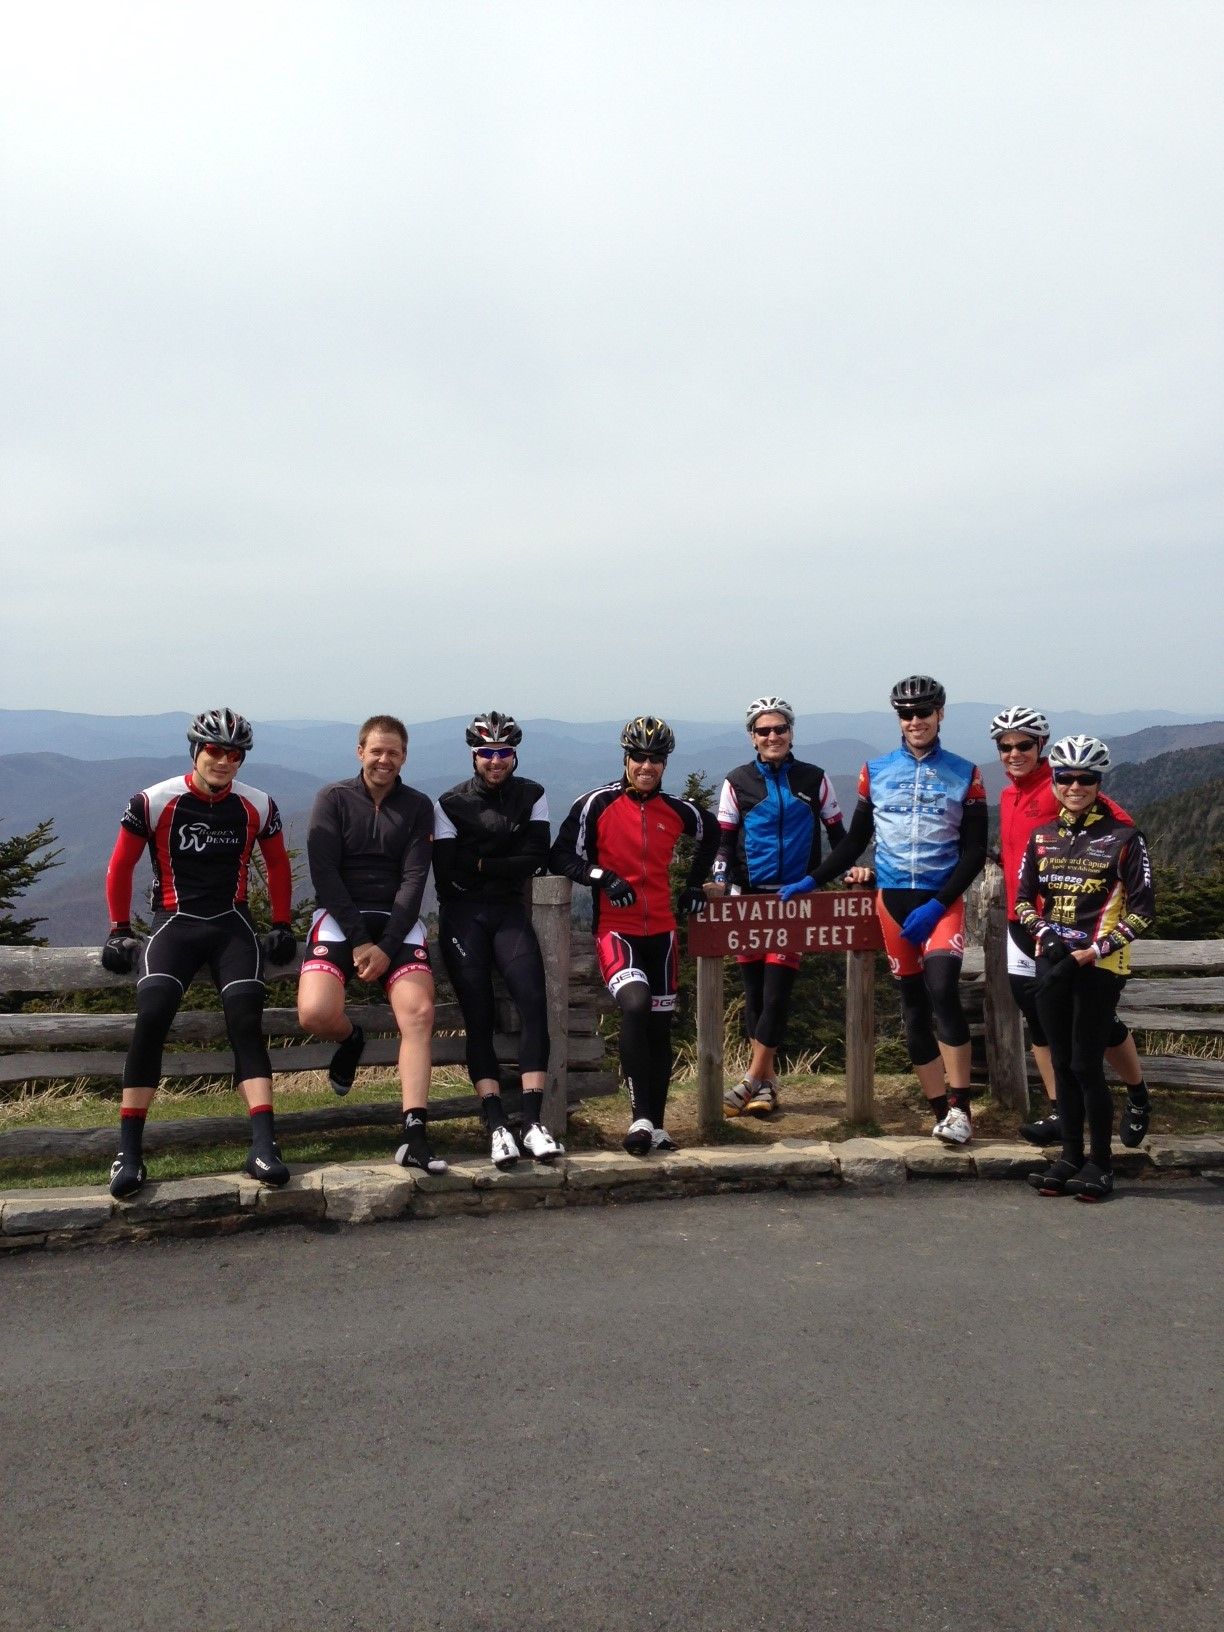 Campers at the top of the climb